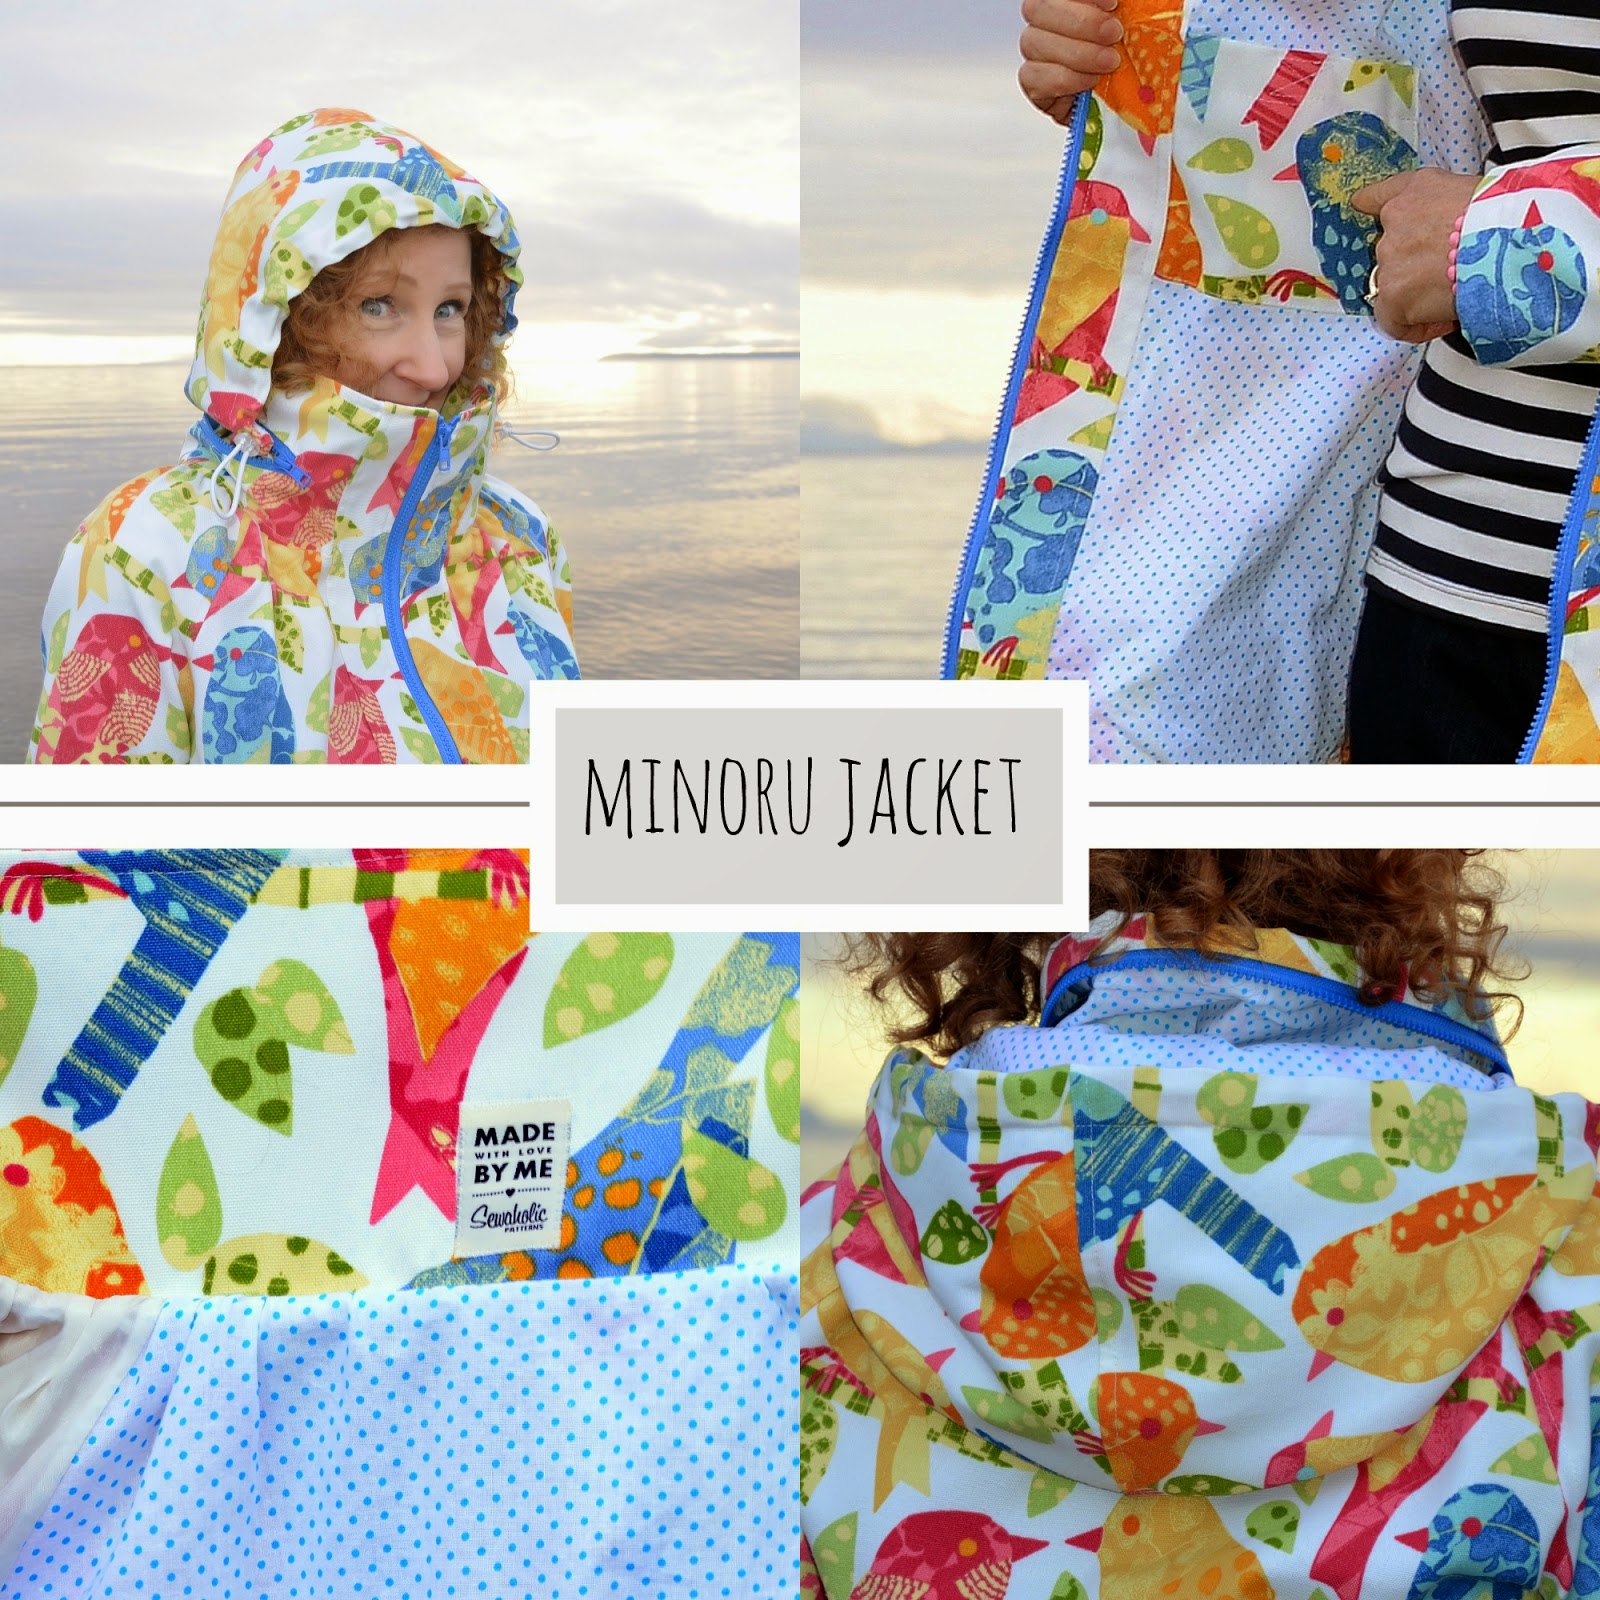 Sewaholic MInoru Jacket, A Colourful Canvas, DYT Type One